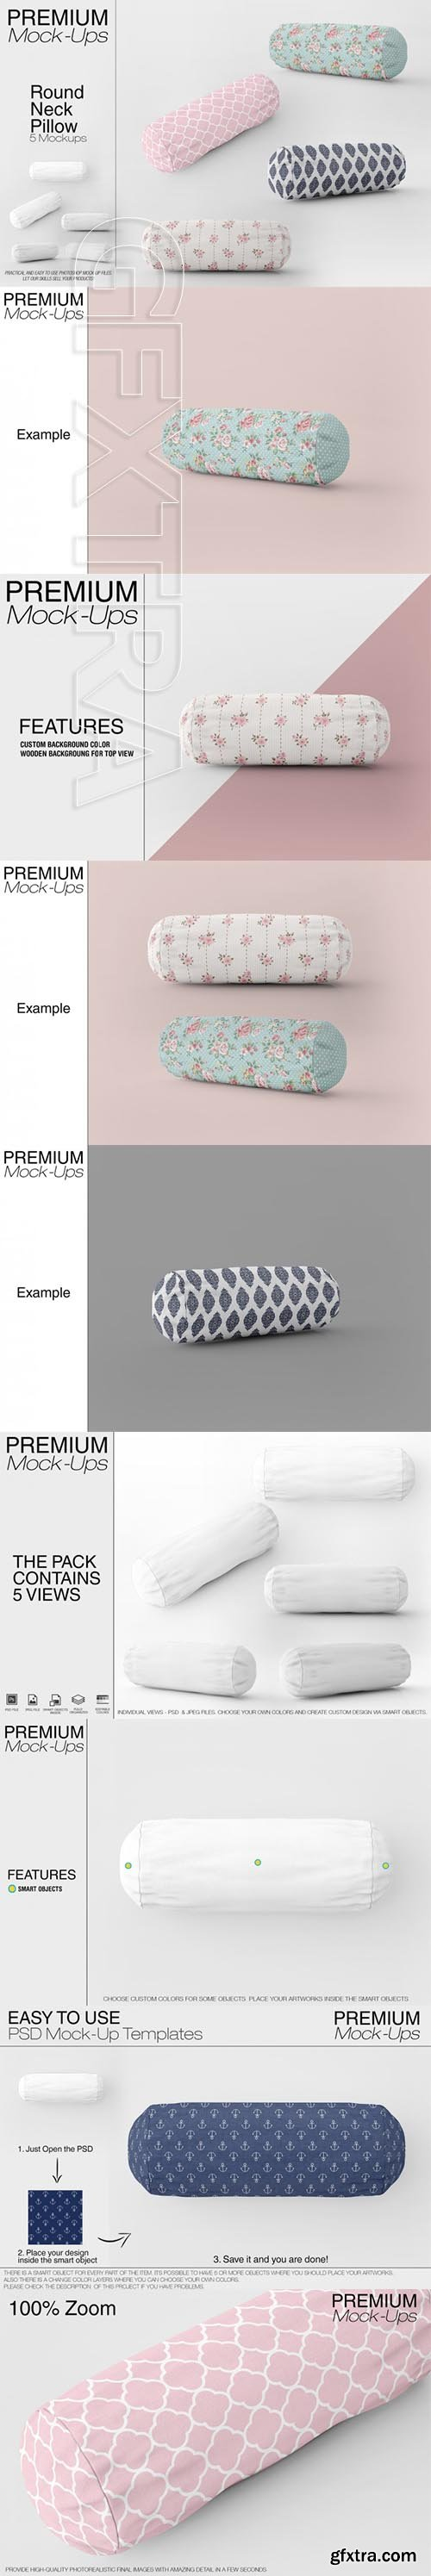 Round Neck Pillow Mockup Pack